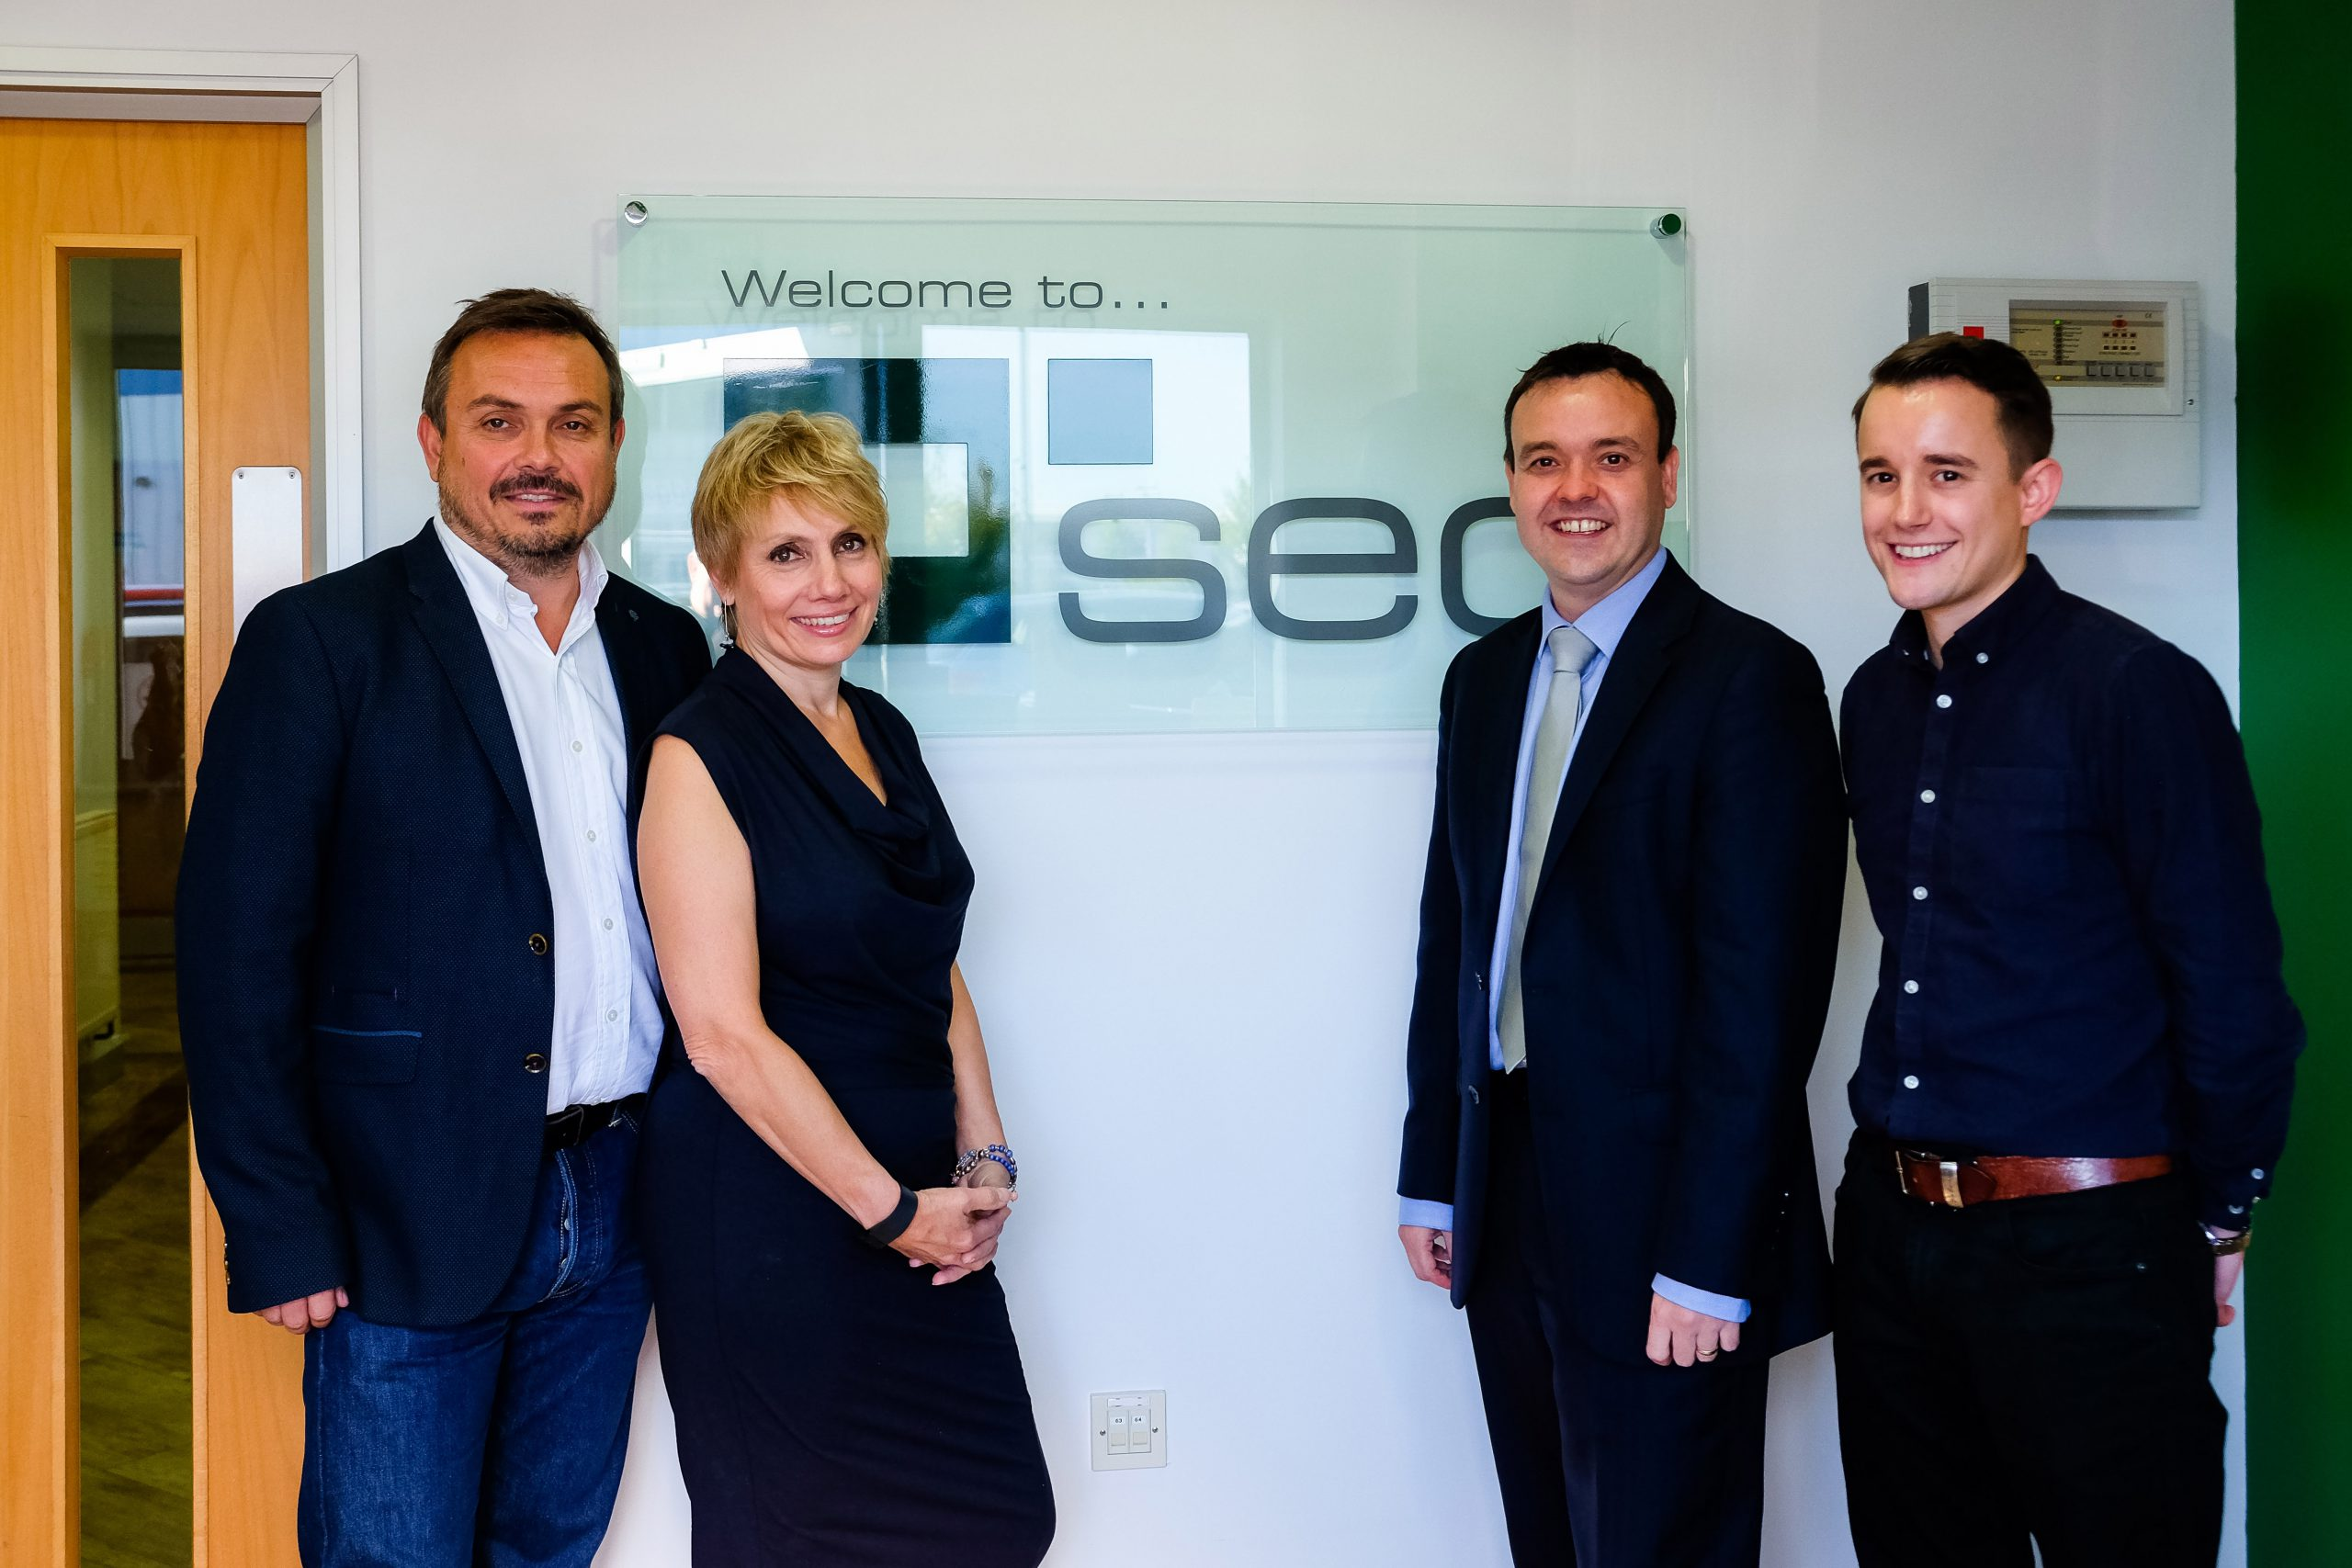 Stephen McPartland MP celebrates SEC's 18 years in business